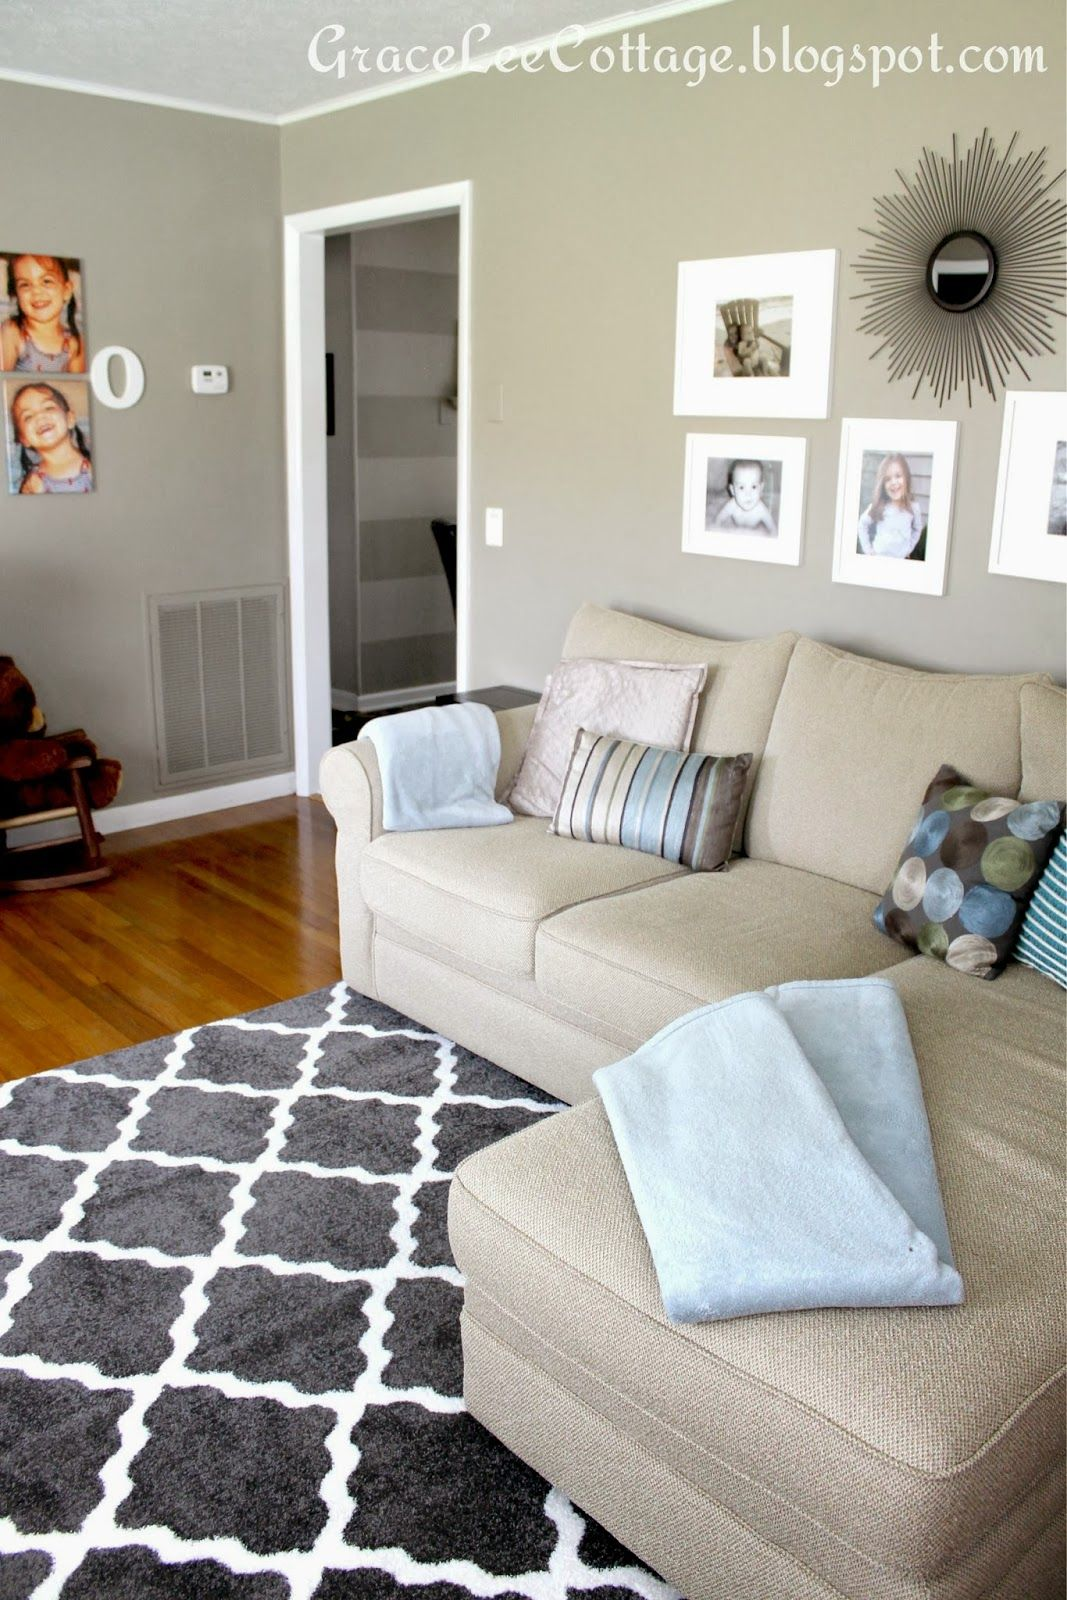 Grace lee cottage our first home rugs in living room - Small area rugs for living room ...